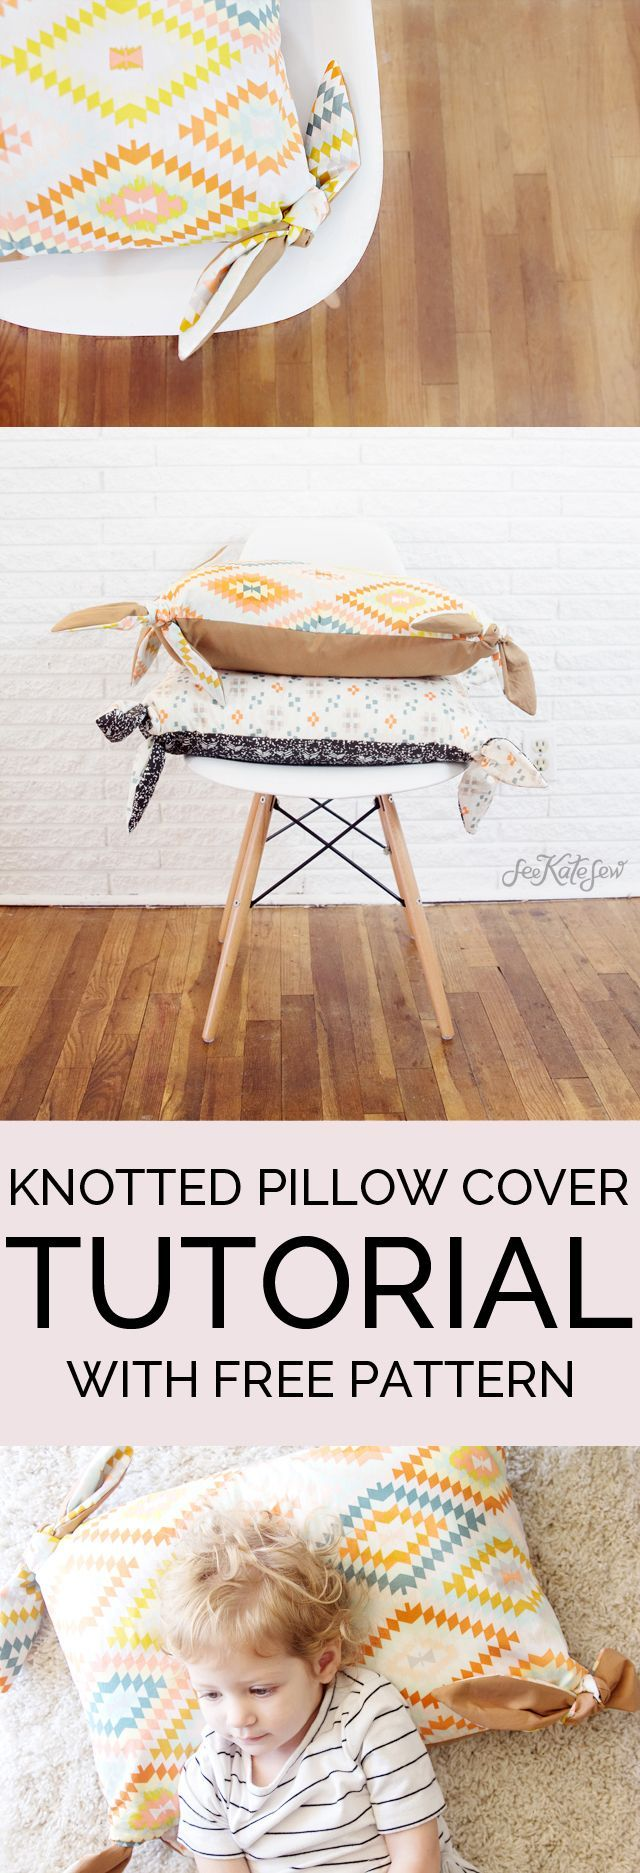 Knotted Pillow Cover Tutorial | diy pillows | how to sew a knotted pillow | diy pillow cover | handmade pillow cover | easy sewing tutorials || See Kate Sew #knottedpillow #diypillow #sewingtutorial